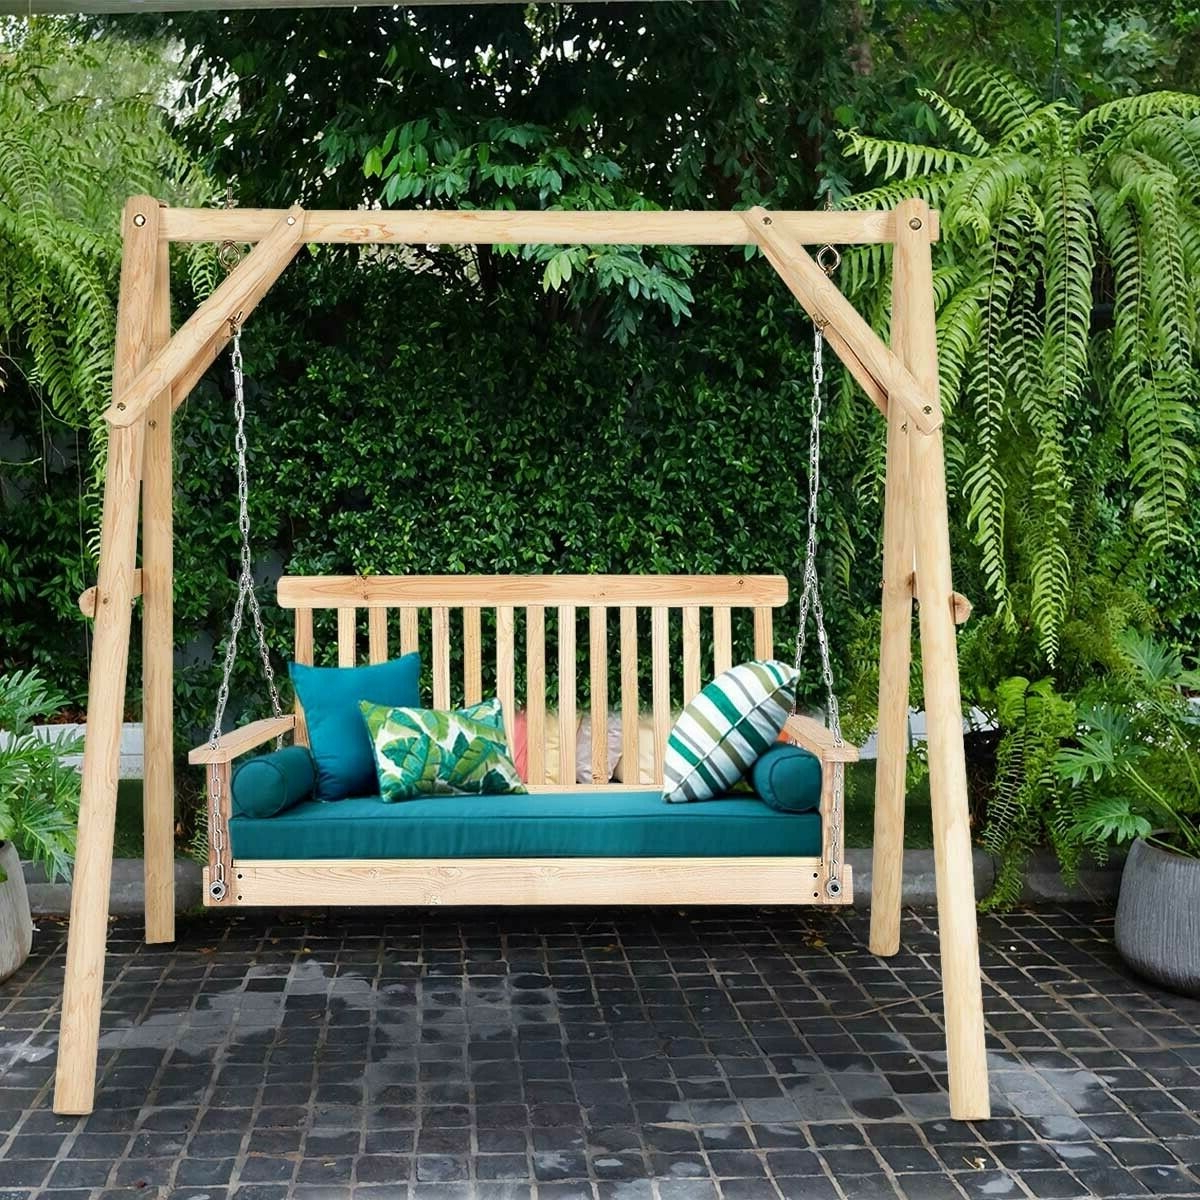 Current Outdoor Porch Swings With Details About 4' Porch Swing Patio Outdoor Hanging Seat Garden Chains Bench Wooden Furniture (View 20 of 25)